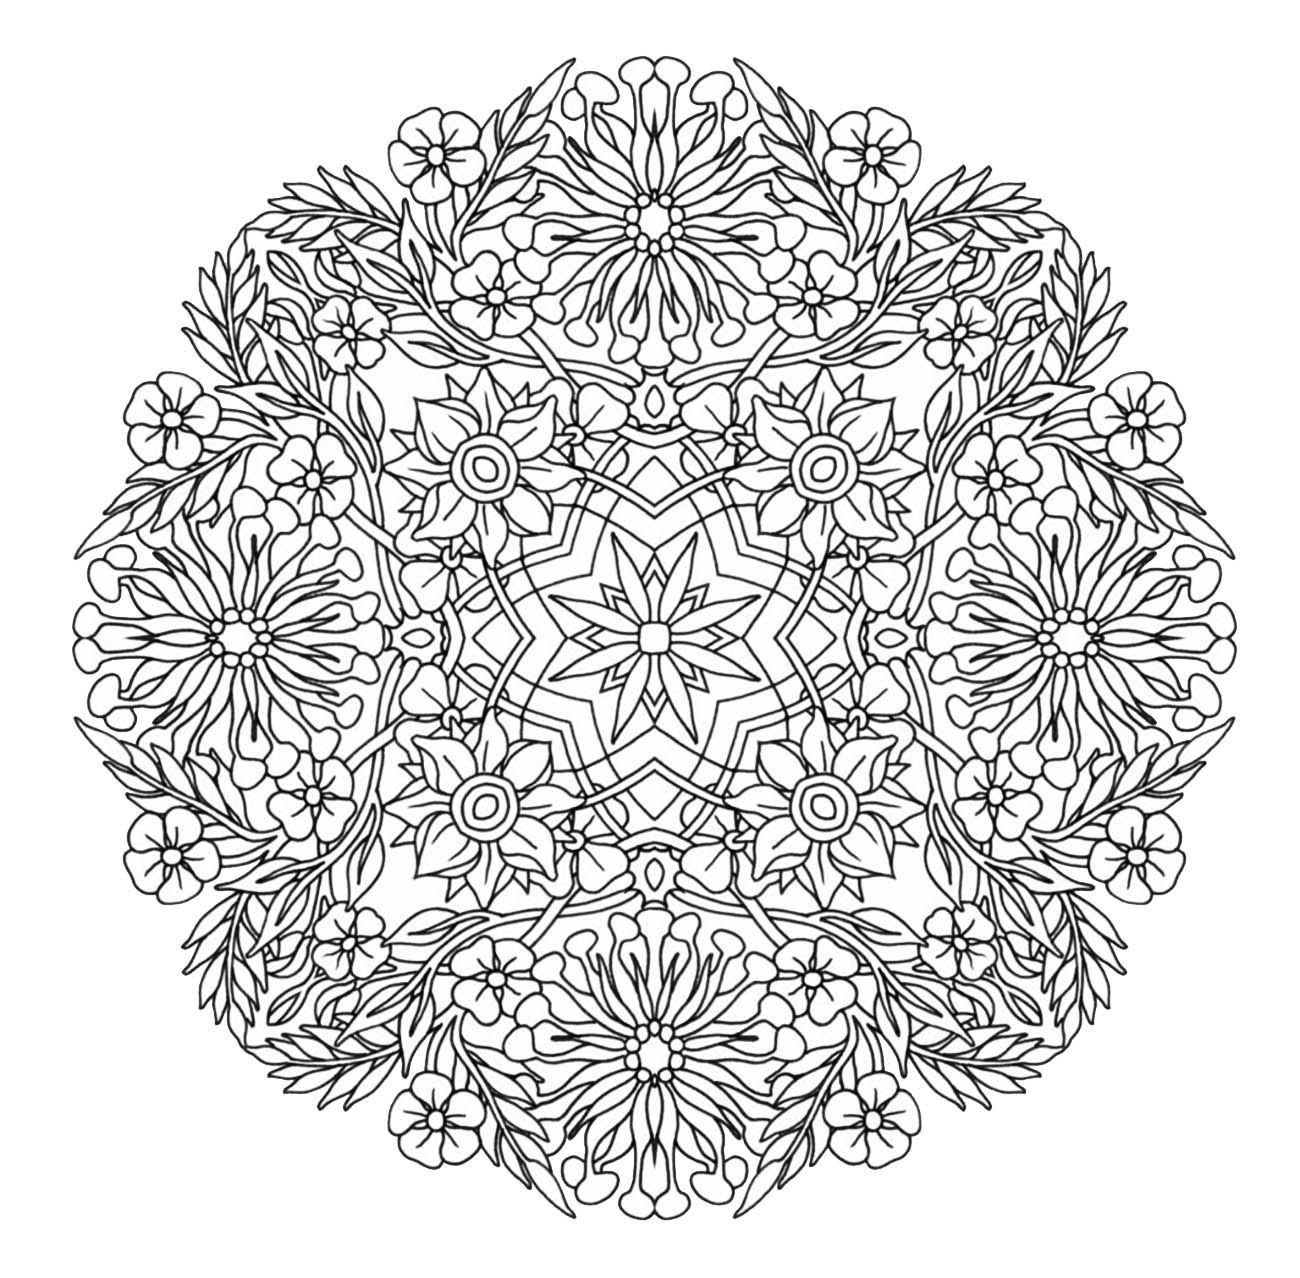 Mandala To Download In Pdf 9 Mandalas Coloring Pages For